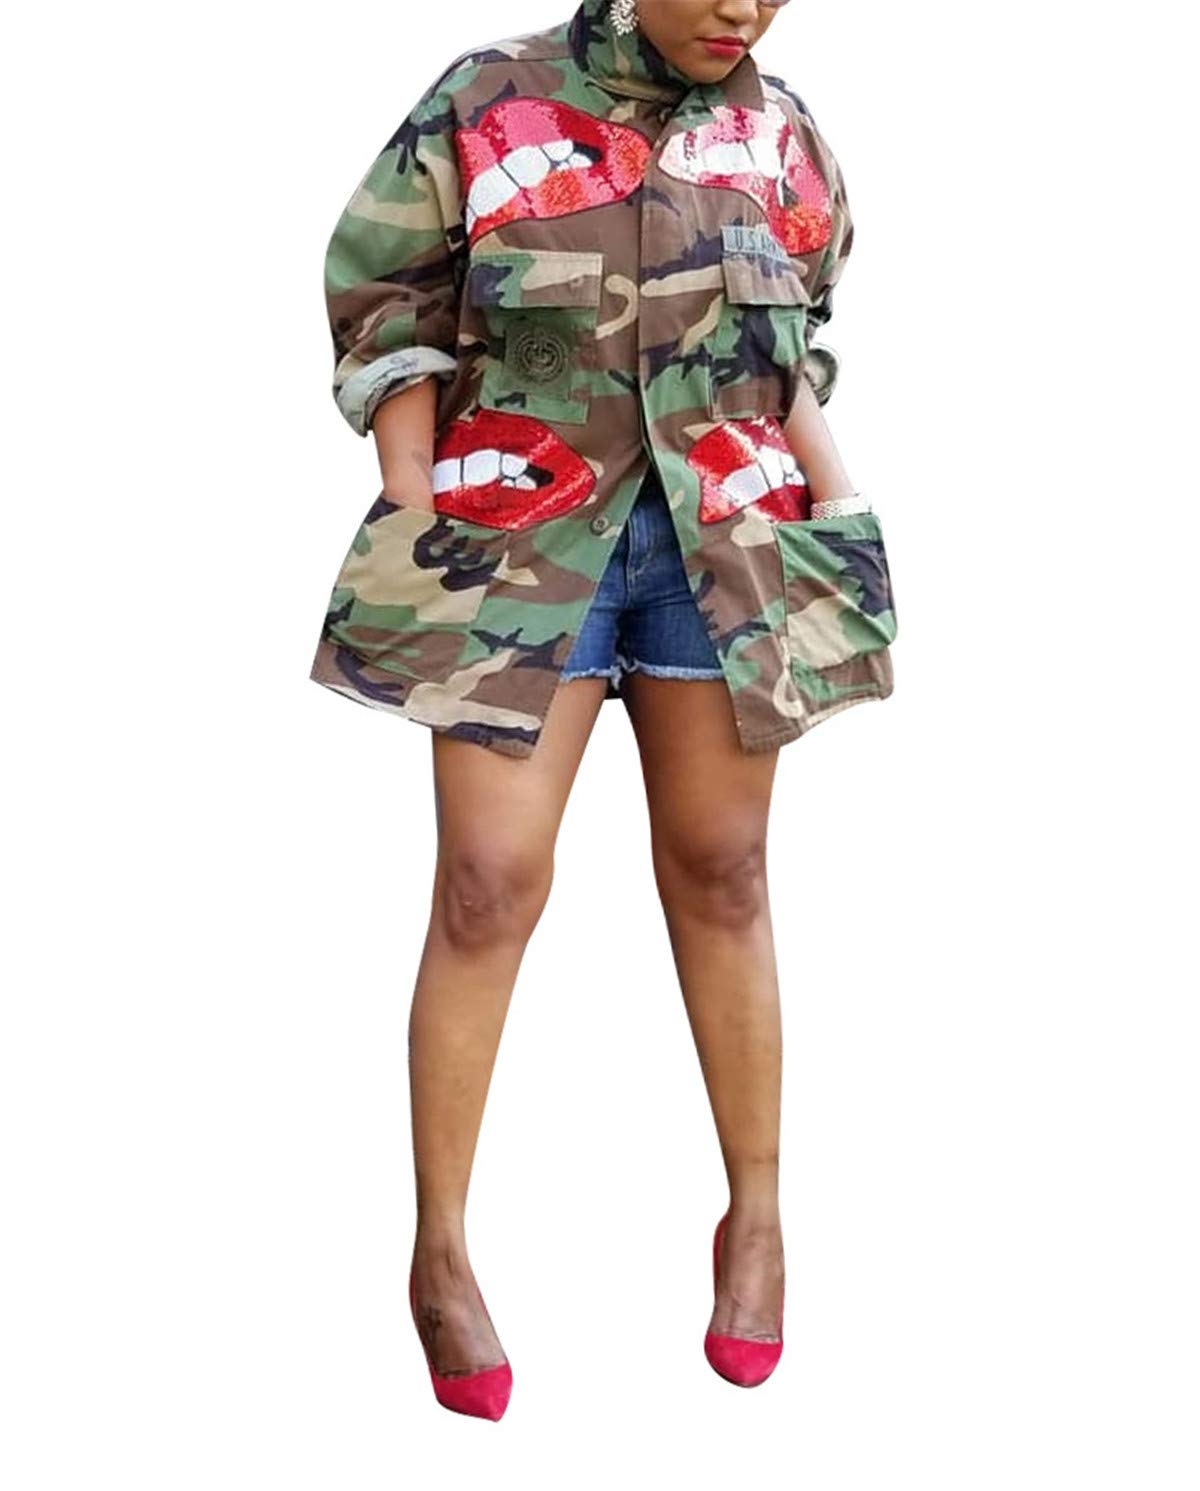 Antique Style Womens Street Fashion Military Camouflage Printed BF Coat Safari Jacket Overcoats